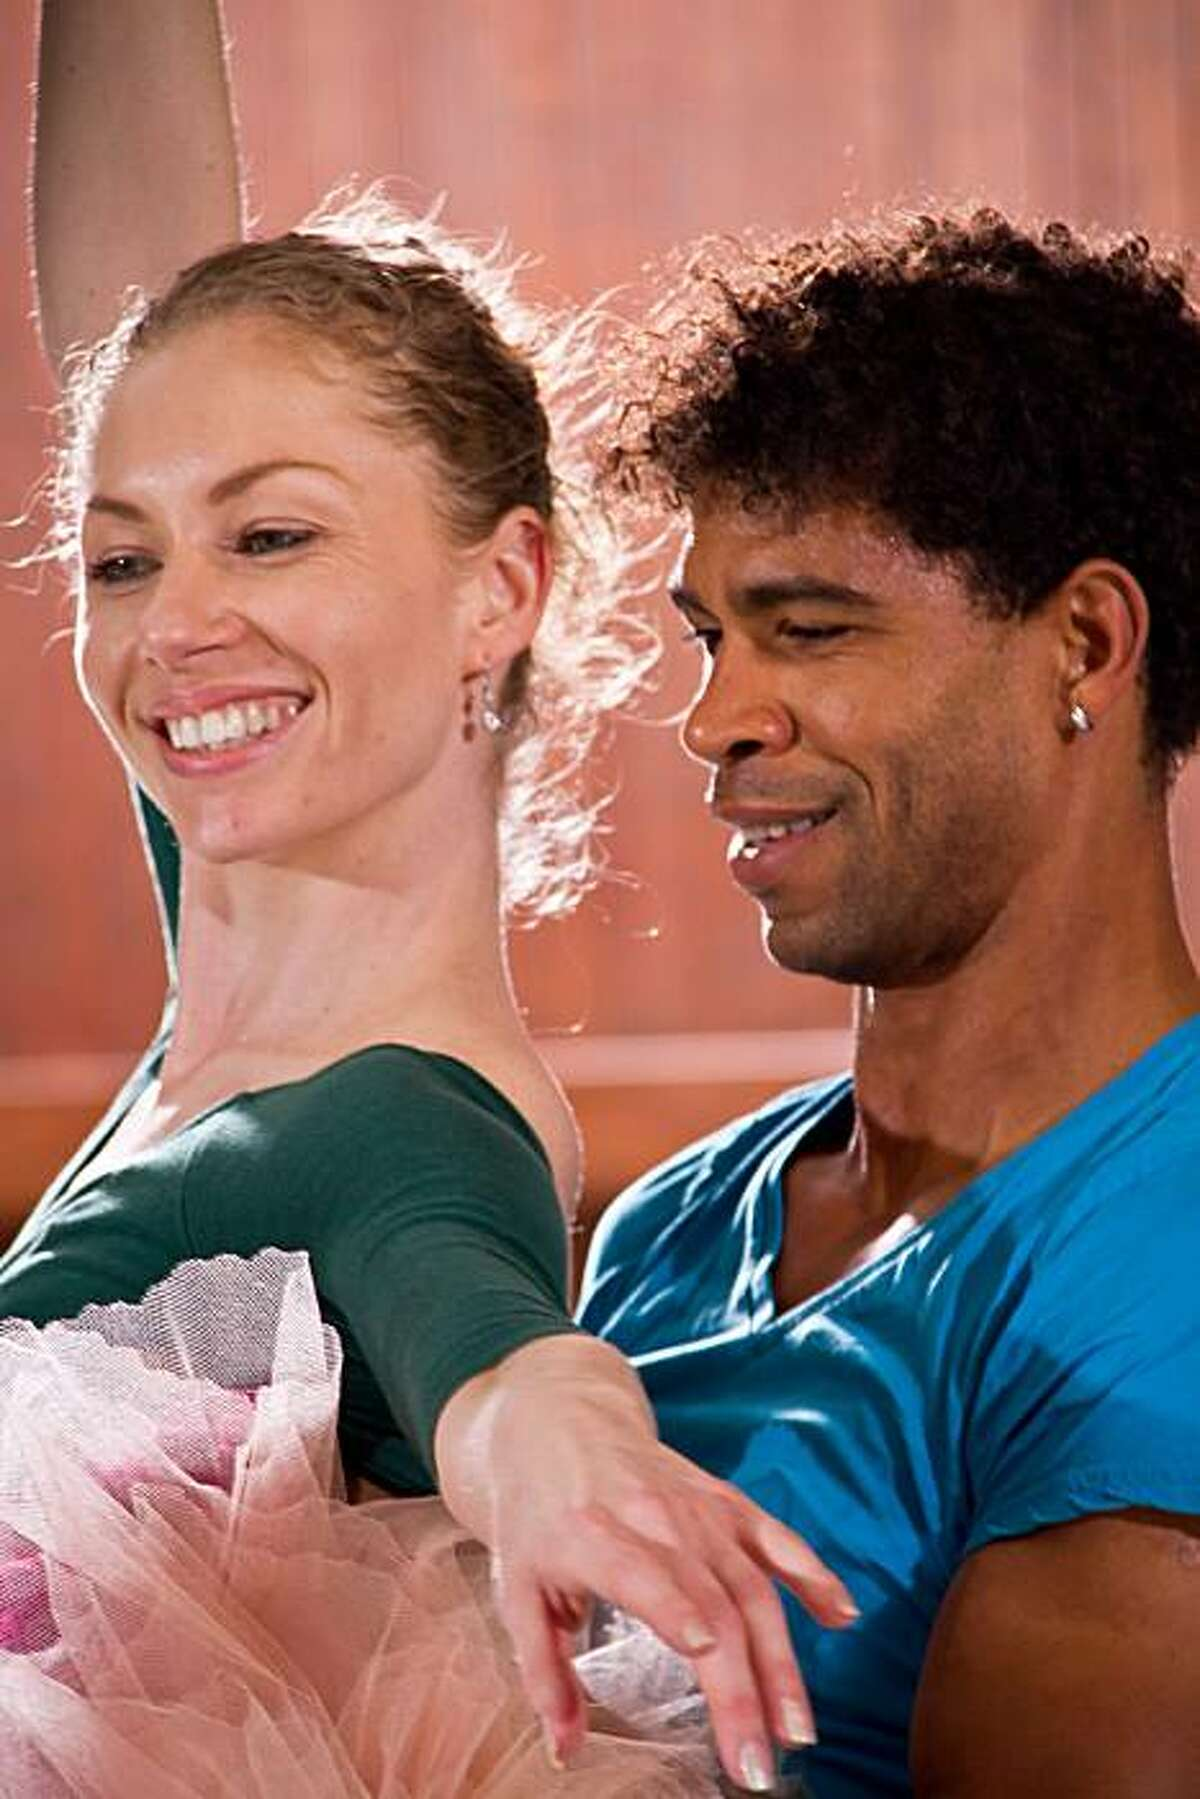 Carlos Acosta and Alexsandra Meijer in rehearsal for SWAN LAKE at Ballet San Jose. Carlos Acosta s dancing Prince Seigfried and Alexsandra is dancing Odette/Odile. All photos are by John Gerbetz . . All photos are by John Gerbetz